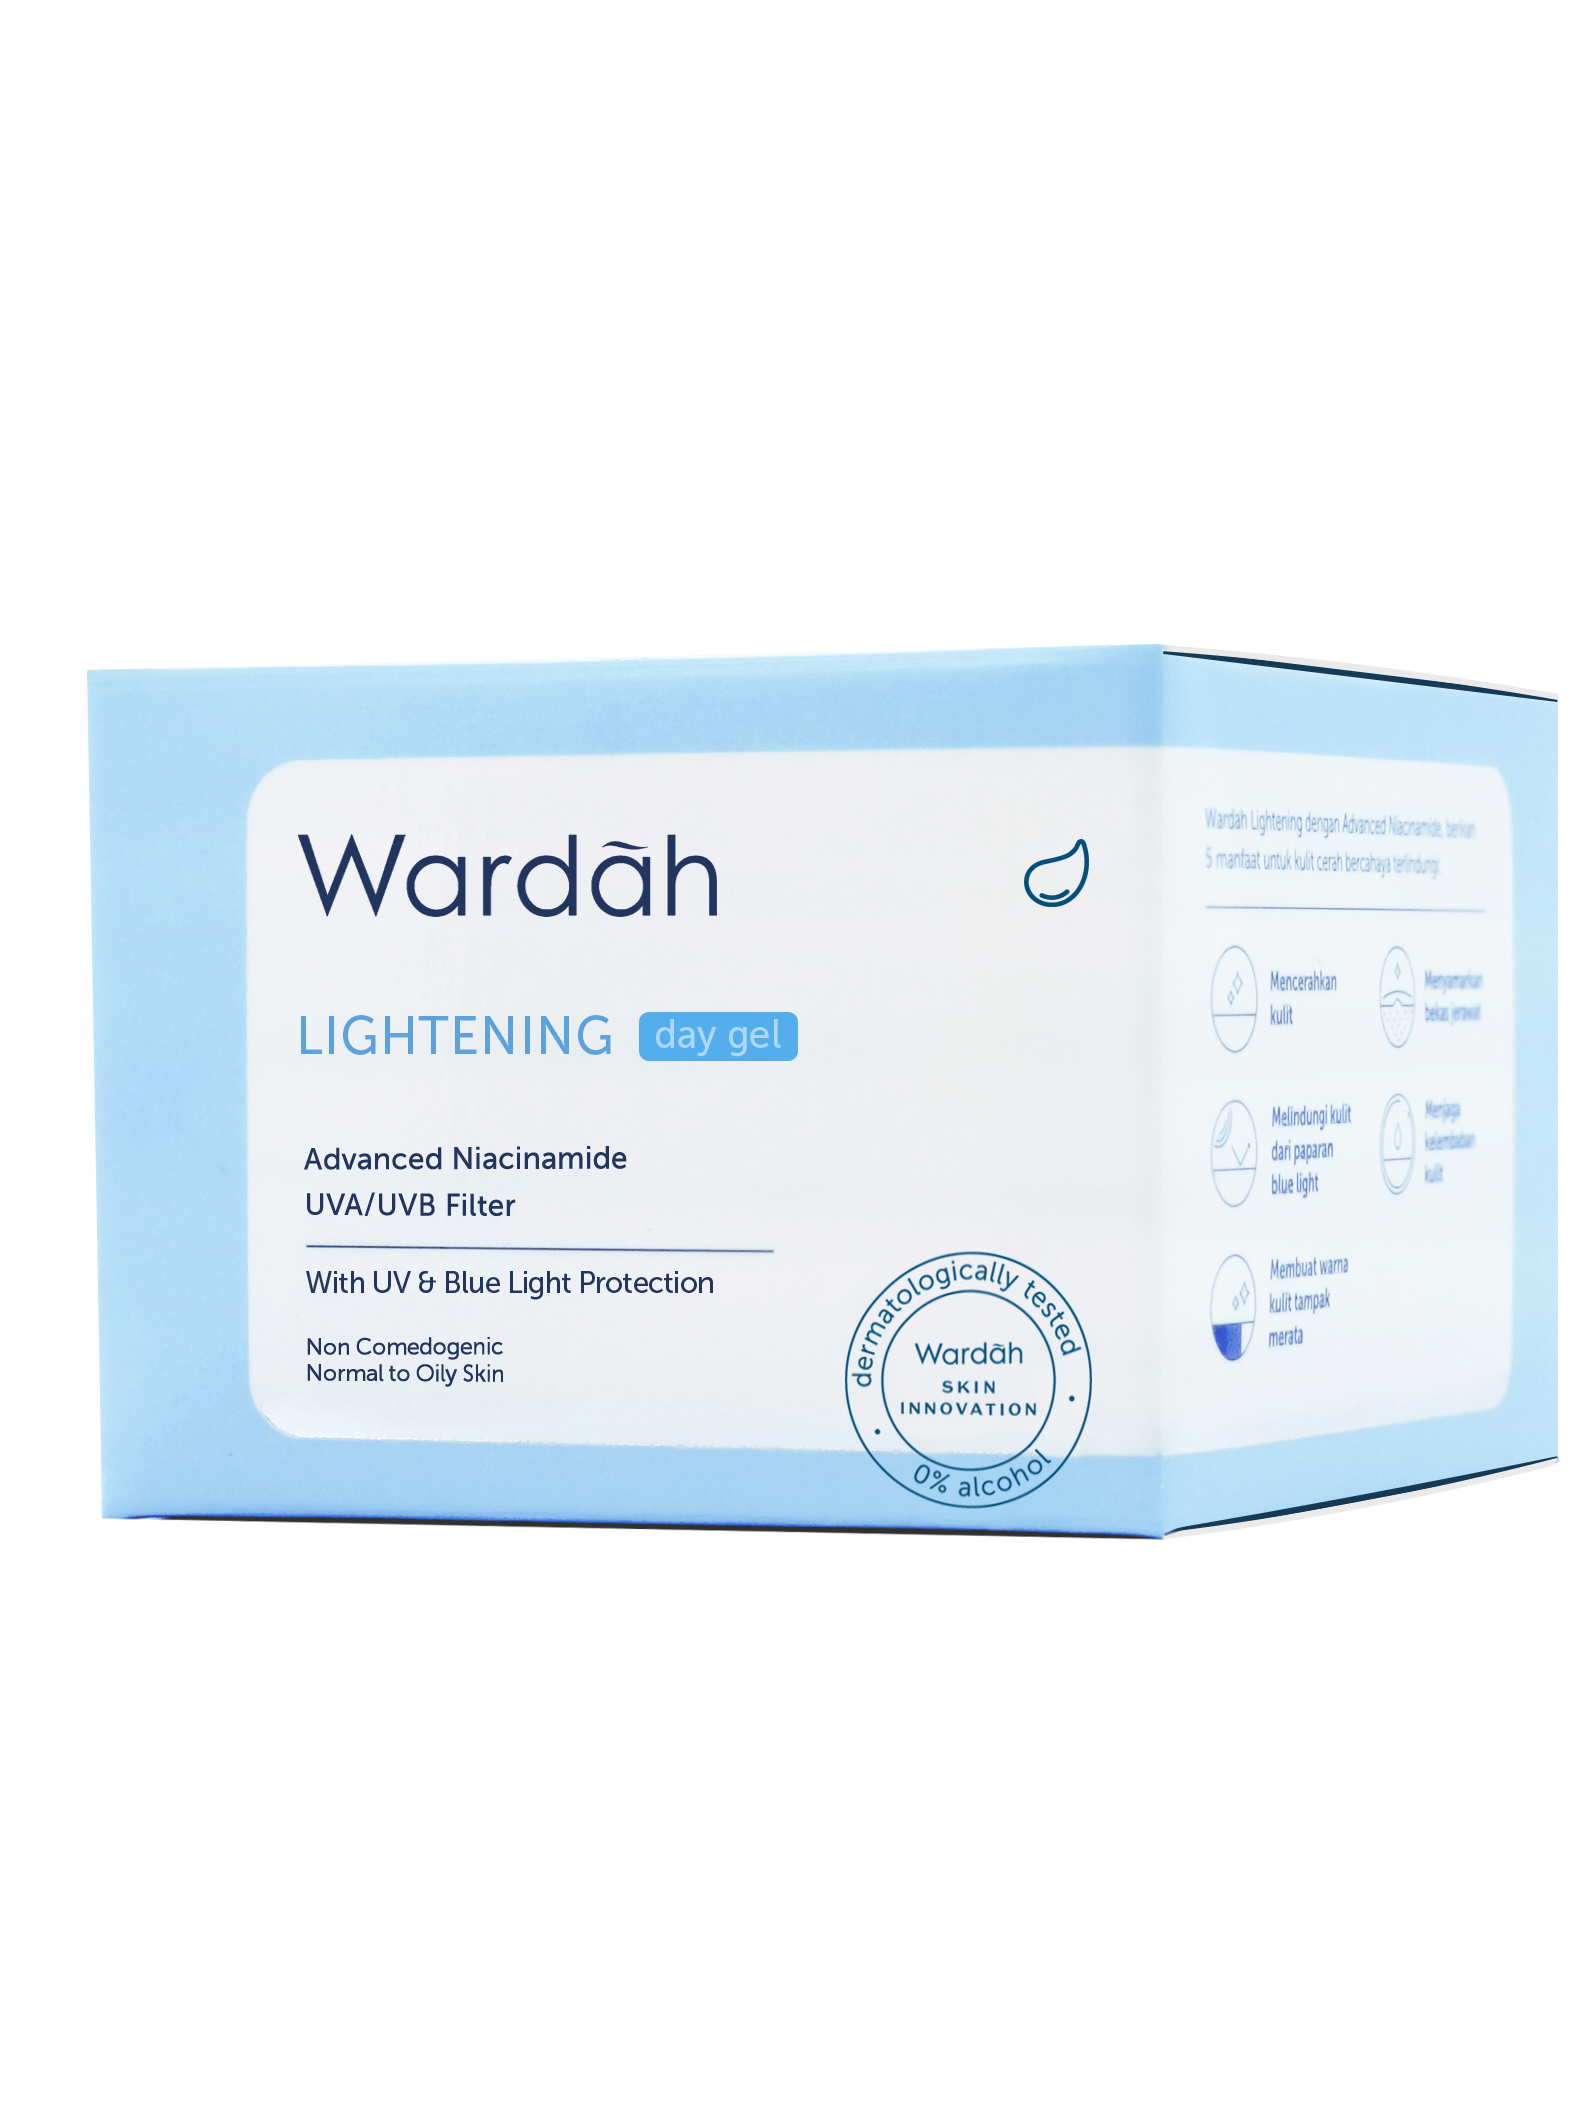 [New] Wardah Lightening Day Gel 30 g - Wardah Womenpreneur